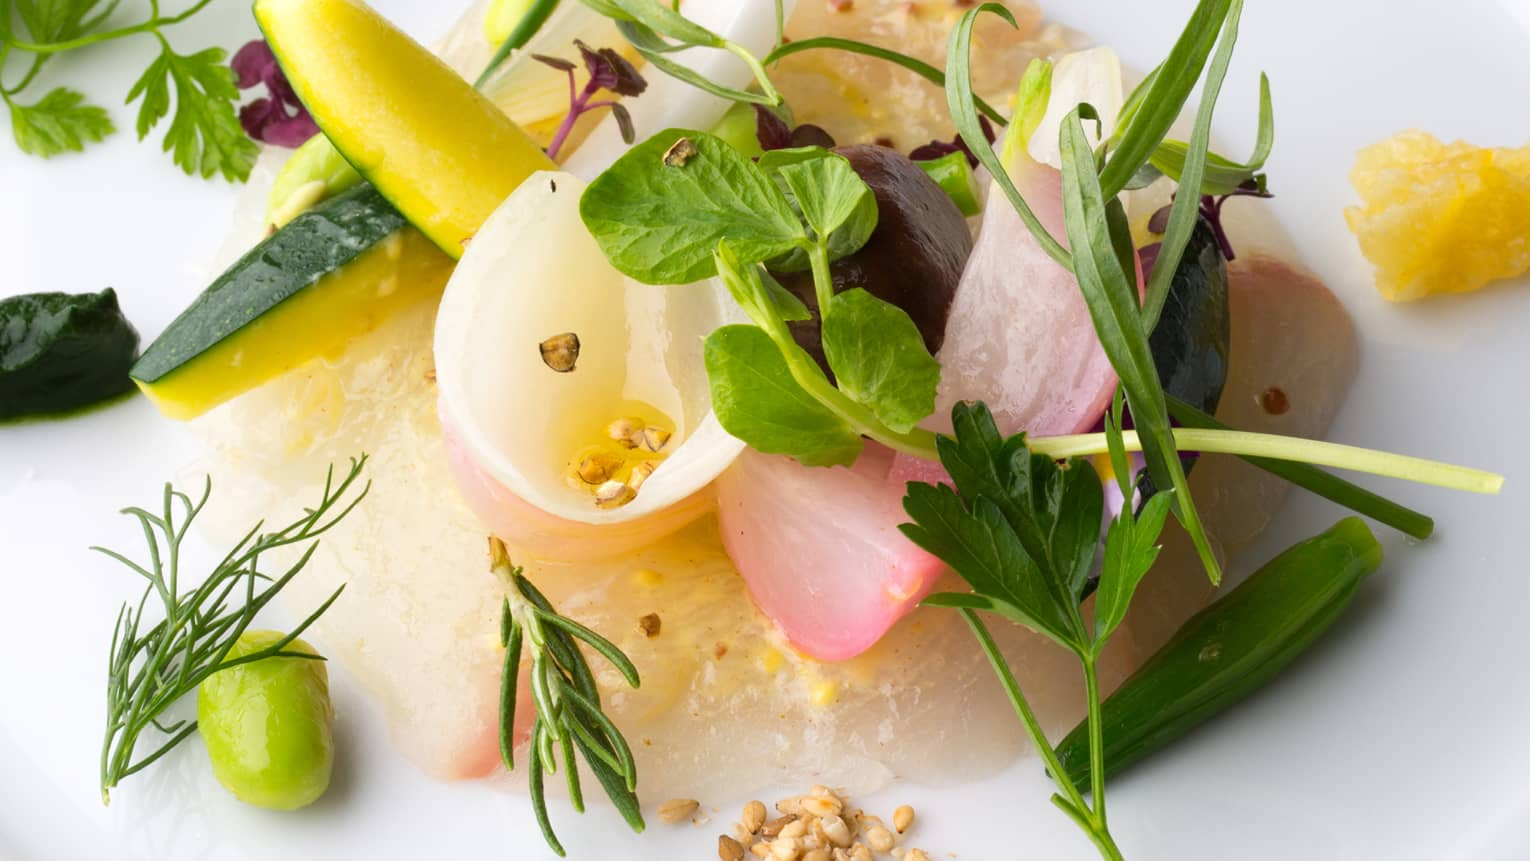 Close-up of pickled vegetables, fresh herbs, dressing on plate